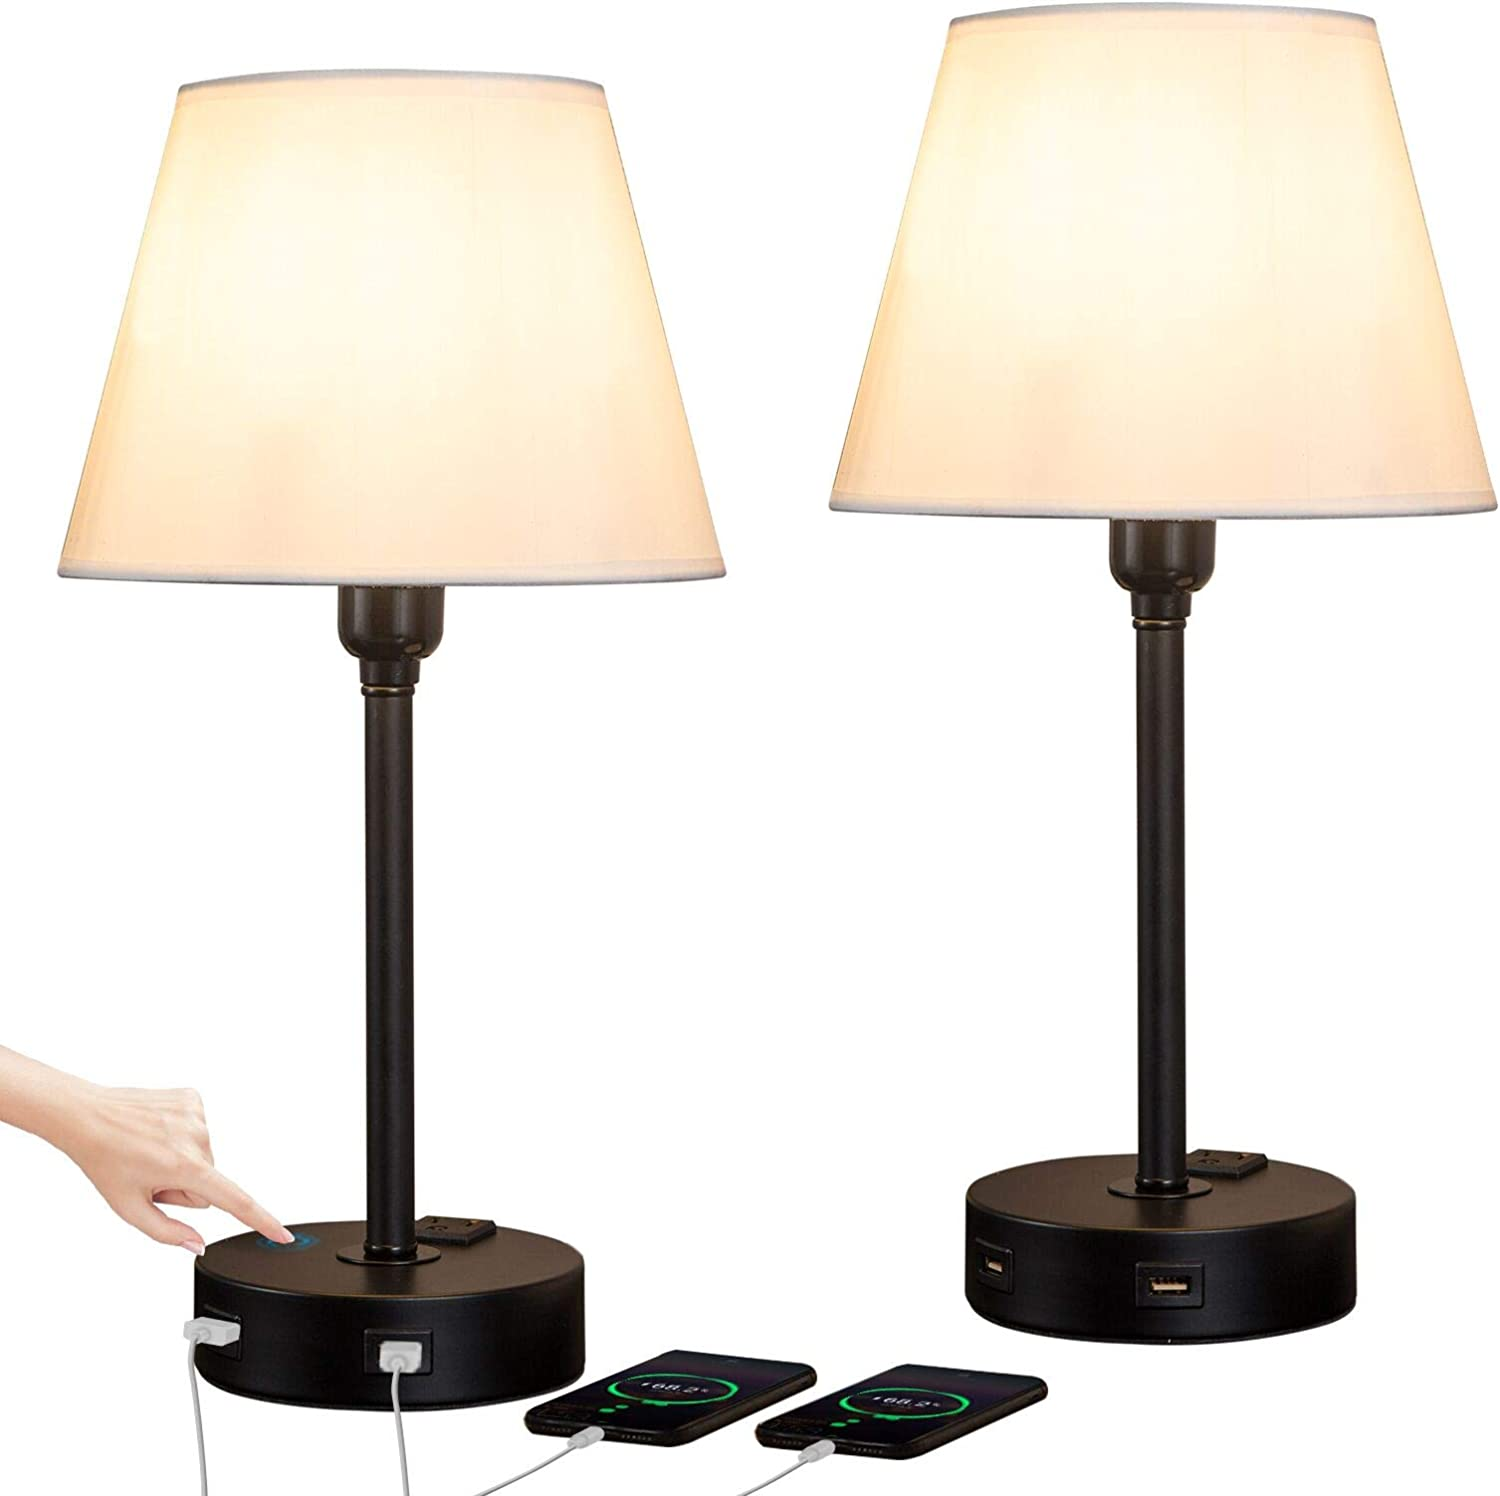 ZEEFO Touch Control Table Super sale outlet period limited Lamp Built USB Ports AC in Dual Outl